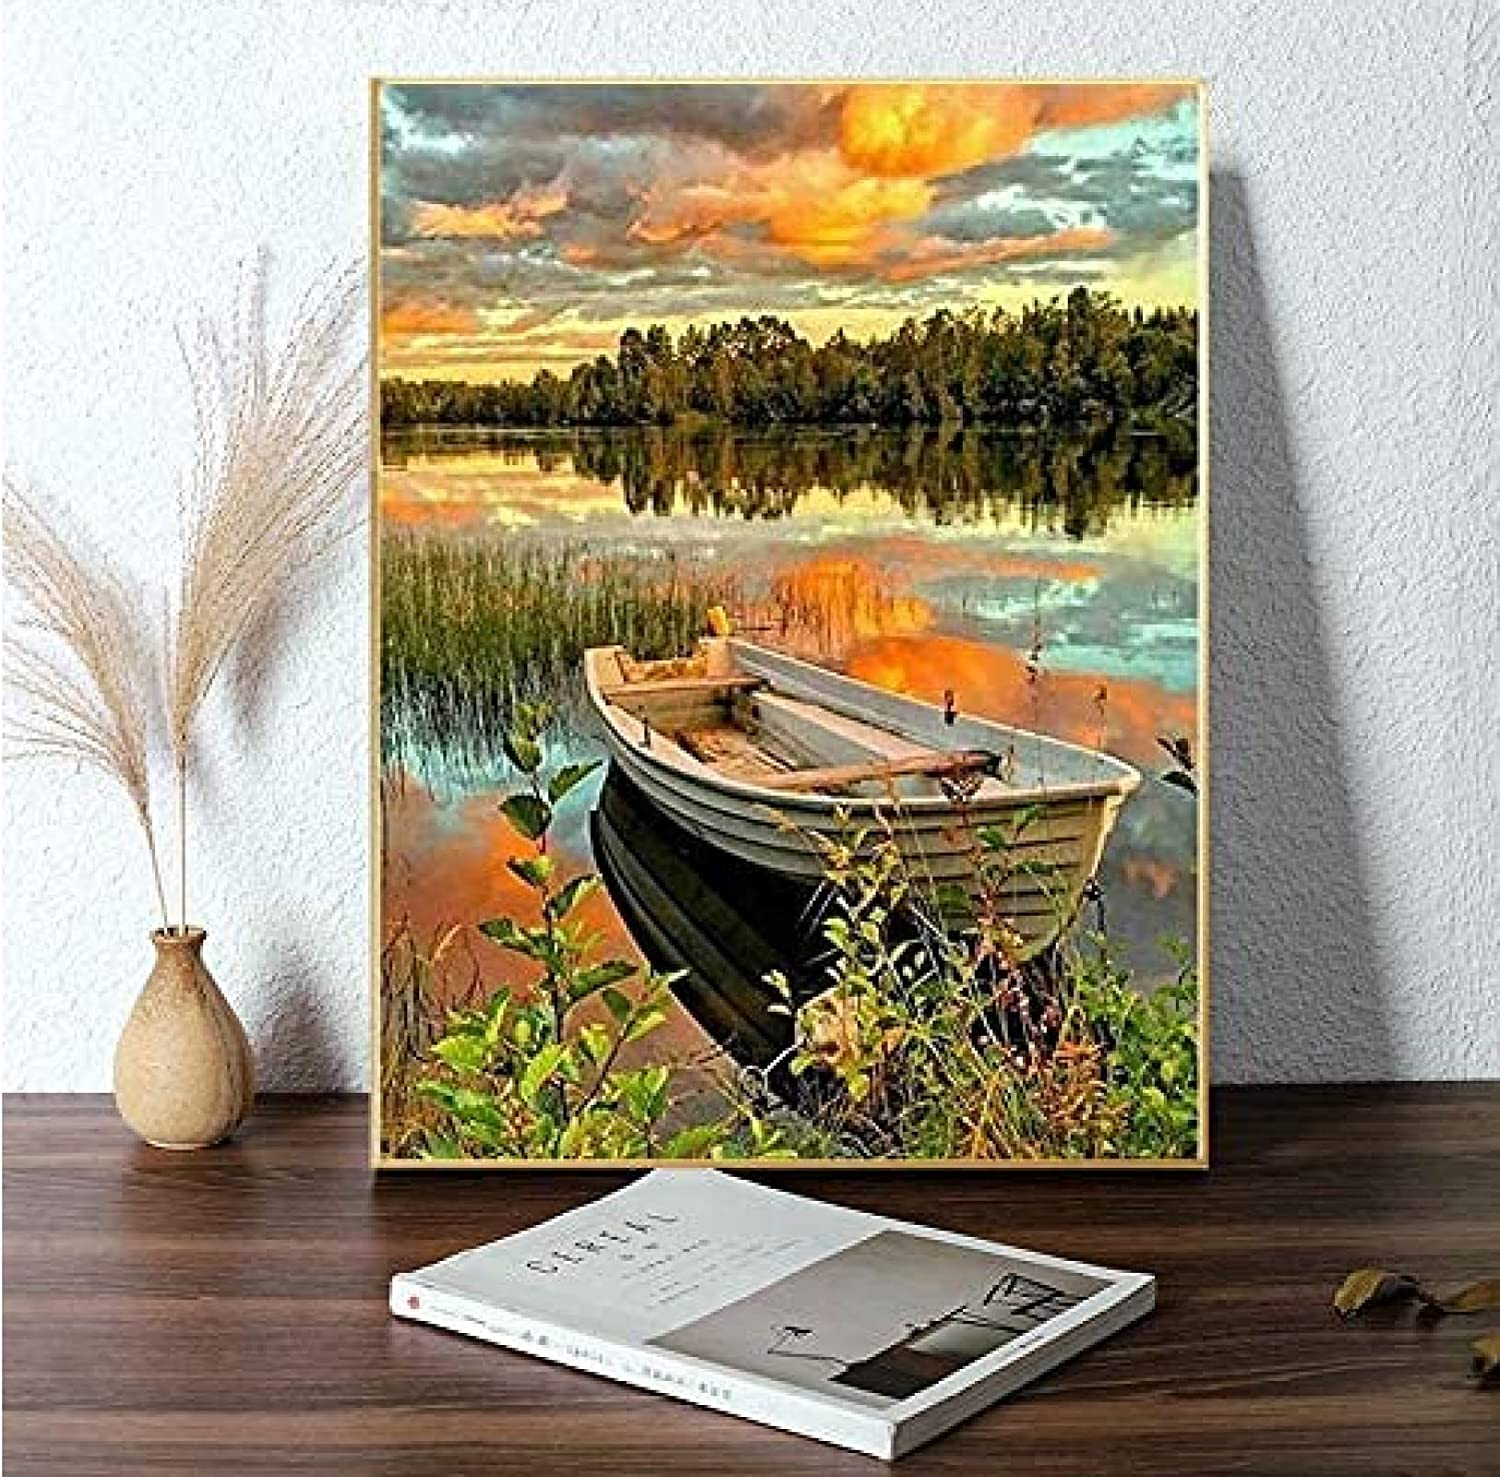 Custom Poster Canvas Gifts Elegant Prints Your Wall Photos Ranking TOP1 D With